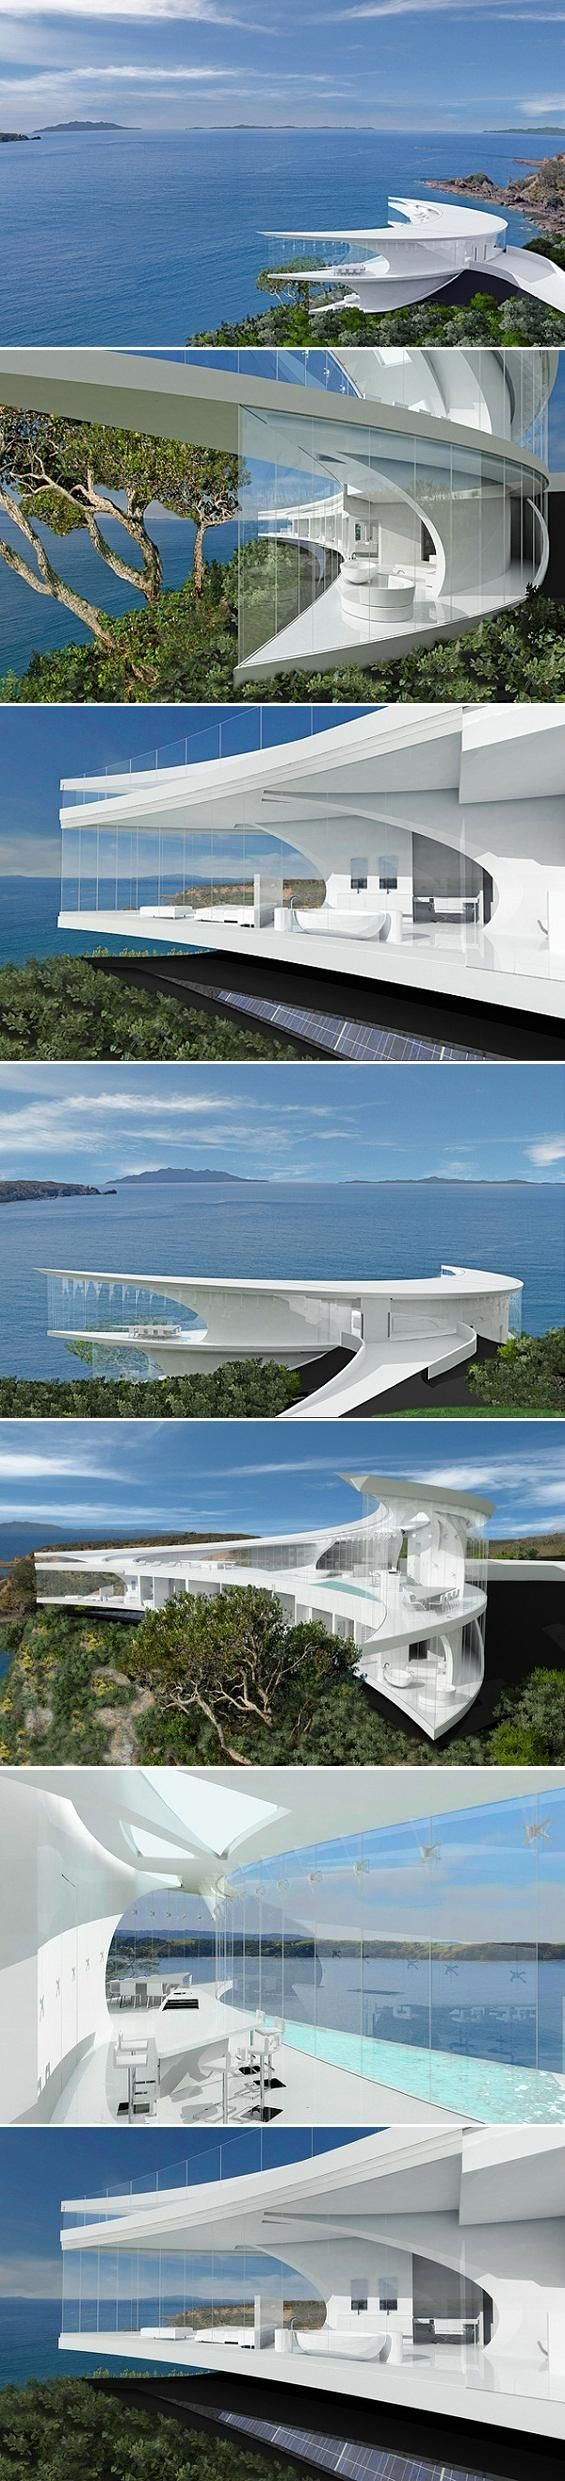 """The Dream house ""Mahina"" (means moon) was designed by ""Weber Consulting"" and as its name suggests, has the form of a crescent. Kawau Island, New Zealand #RealEstateBuzz"